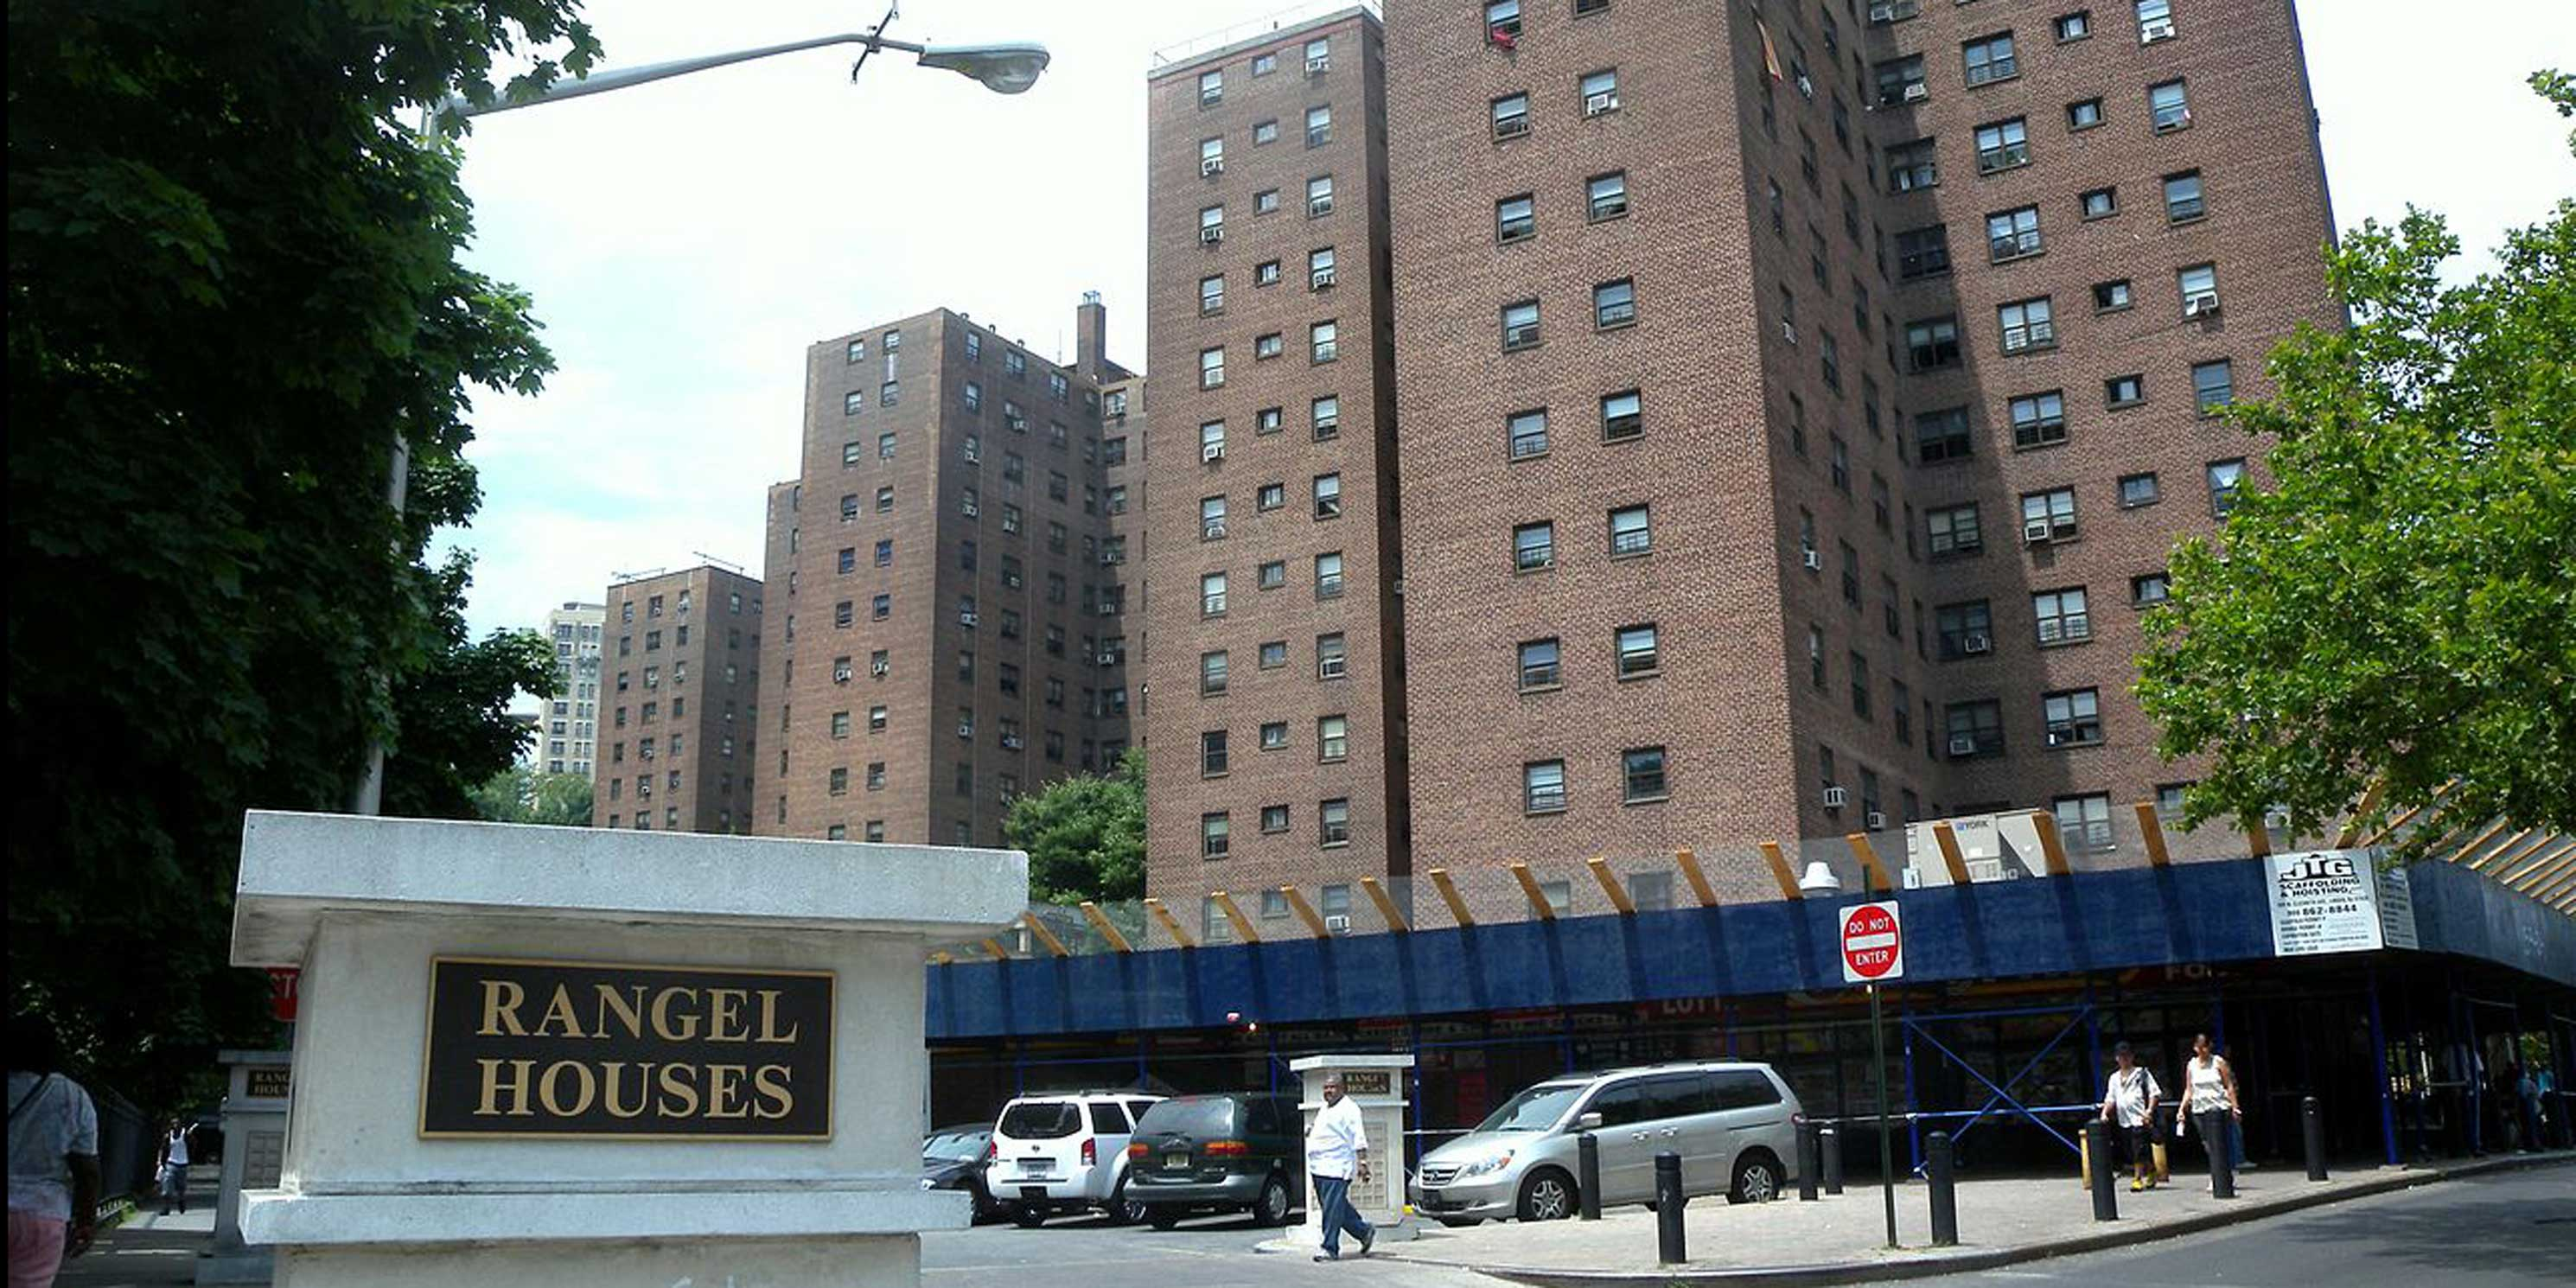 exterior of the New York City Housing Authority's Rangel Houses